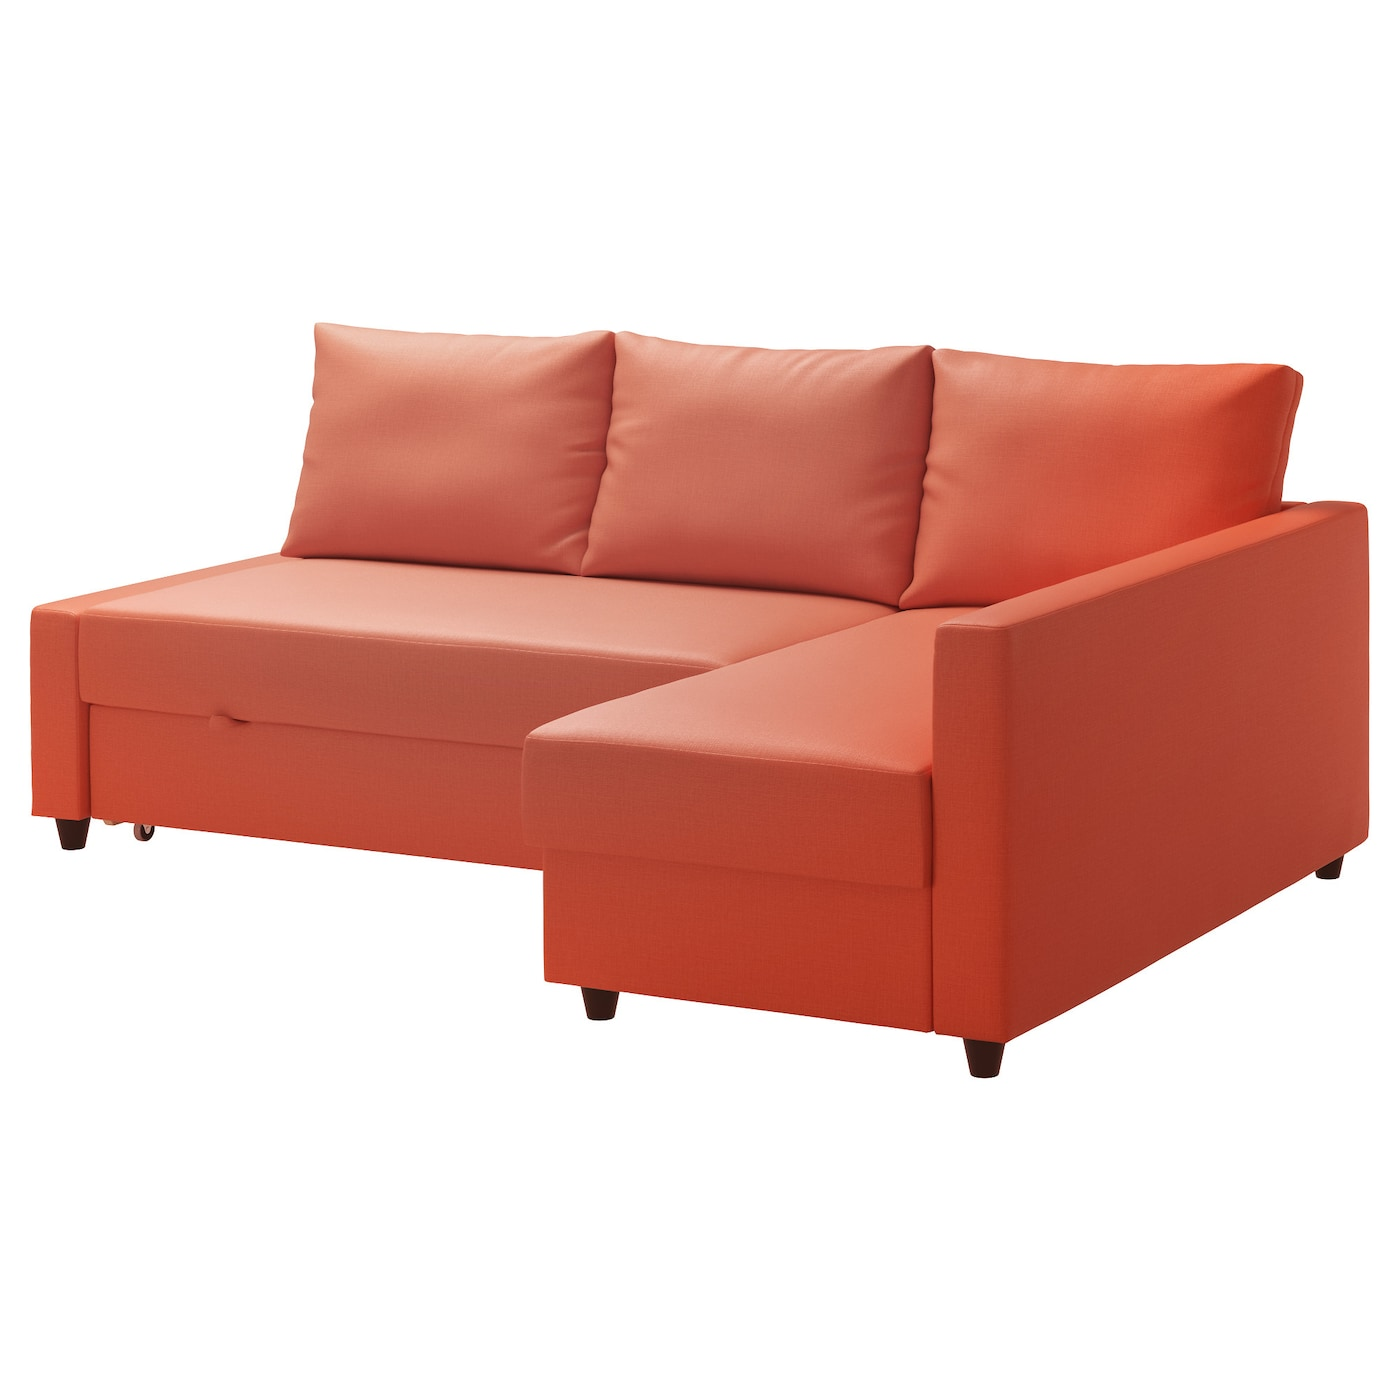 Friheten corner sofa bed with storage skiftebo dark orange for Sofa bed zuza